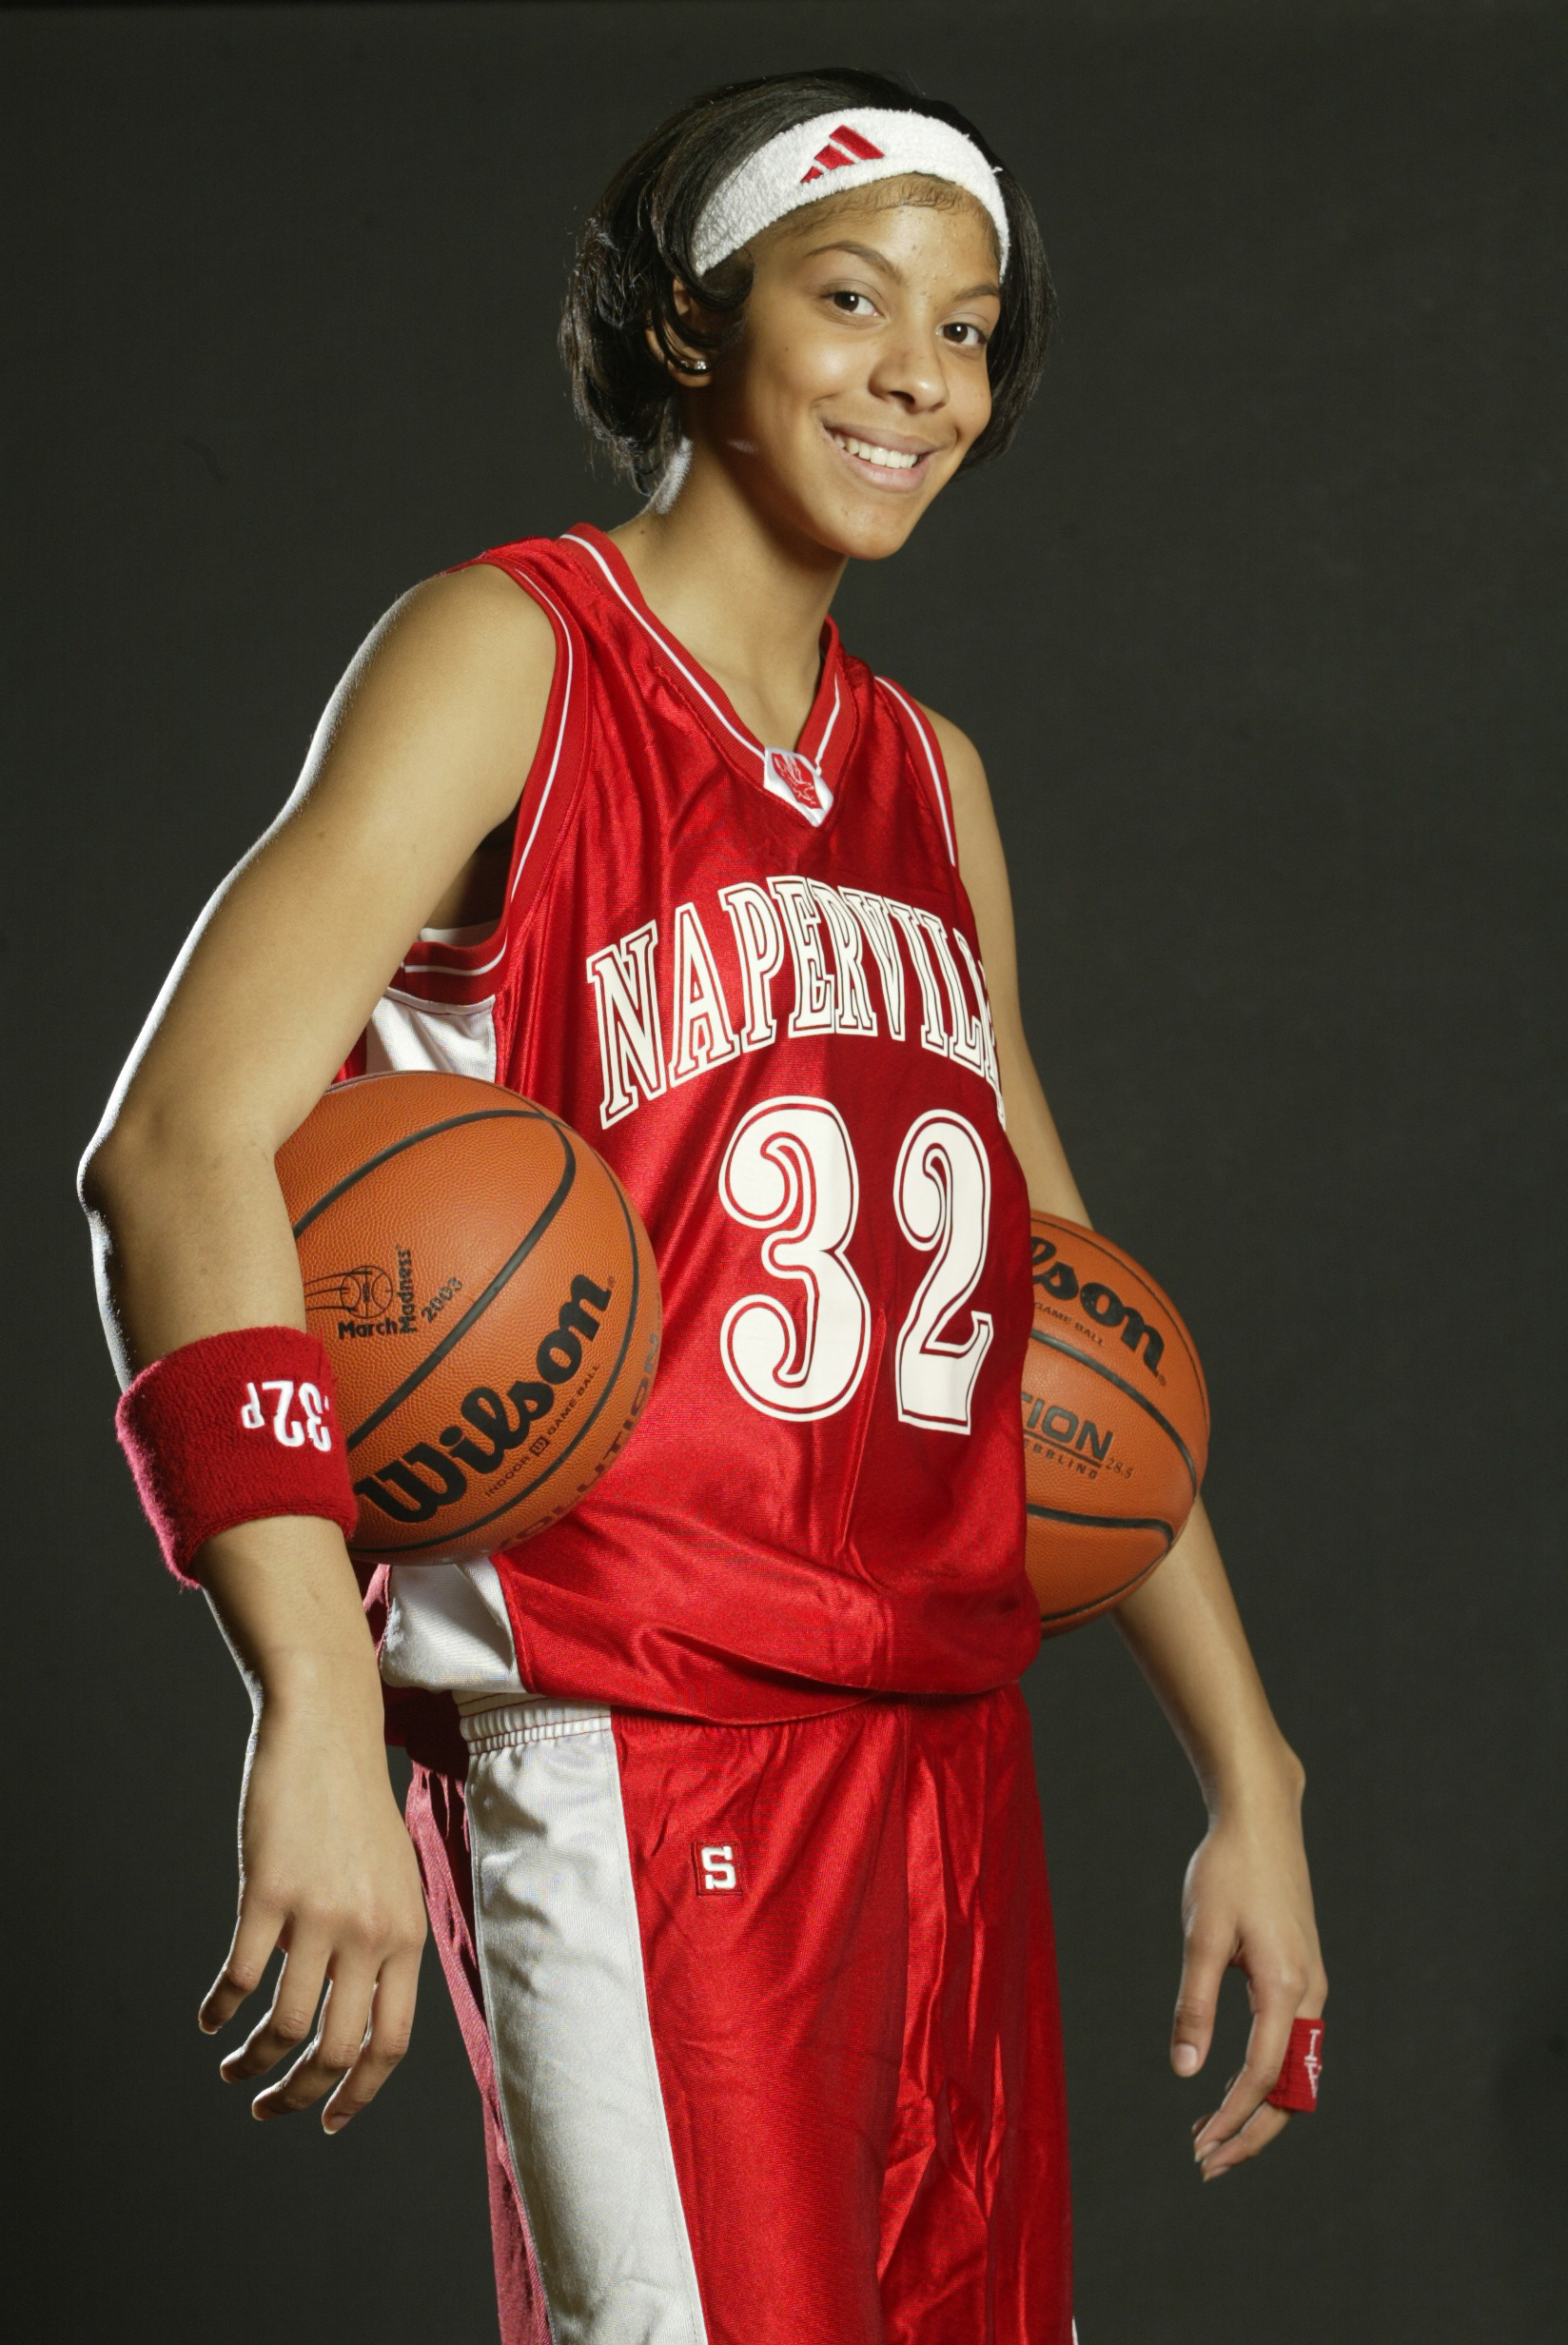 All USA Girls Basketball Team player Candace Parker --- DATE TAKEN: 4/7/2003 By John Zich USAT , Source: For USA TODAY Naperville IL UNL - Unlimited reuse ORG XMIT: PX93709